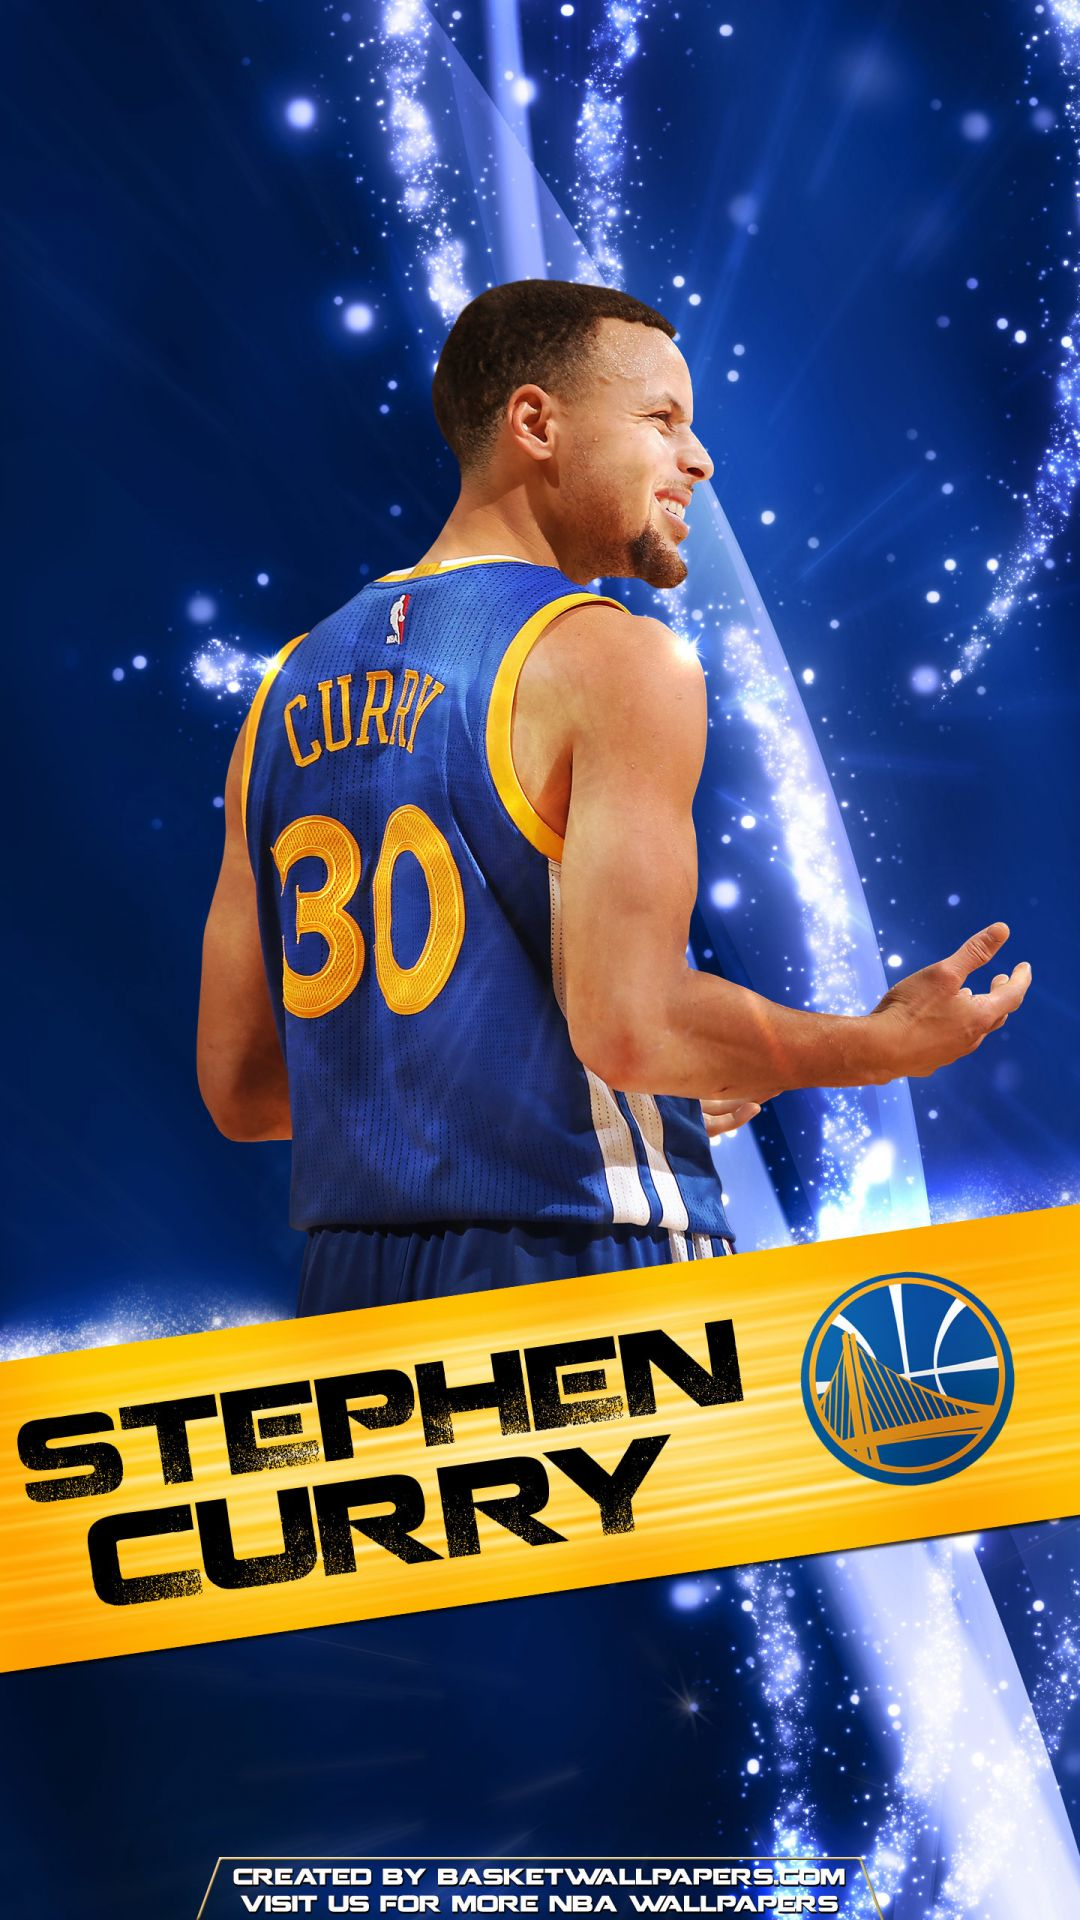 60 Cool Nba For Iphone Android Iphone Desktop Hd Backgrounds Wallpapers 1080p 4k 1440x2560 2020